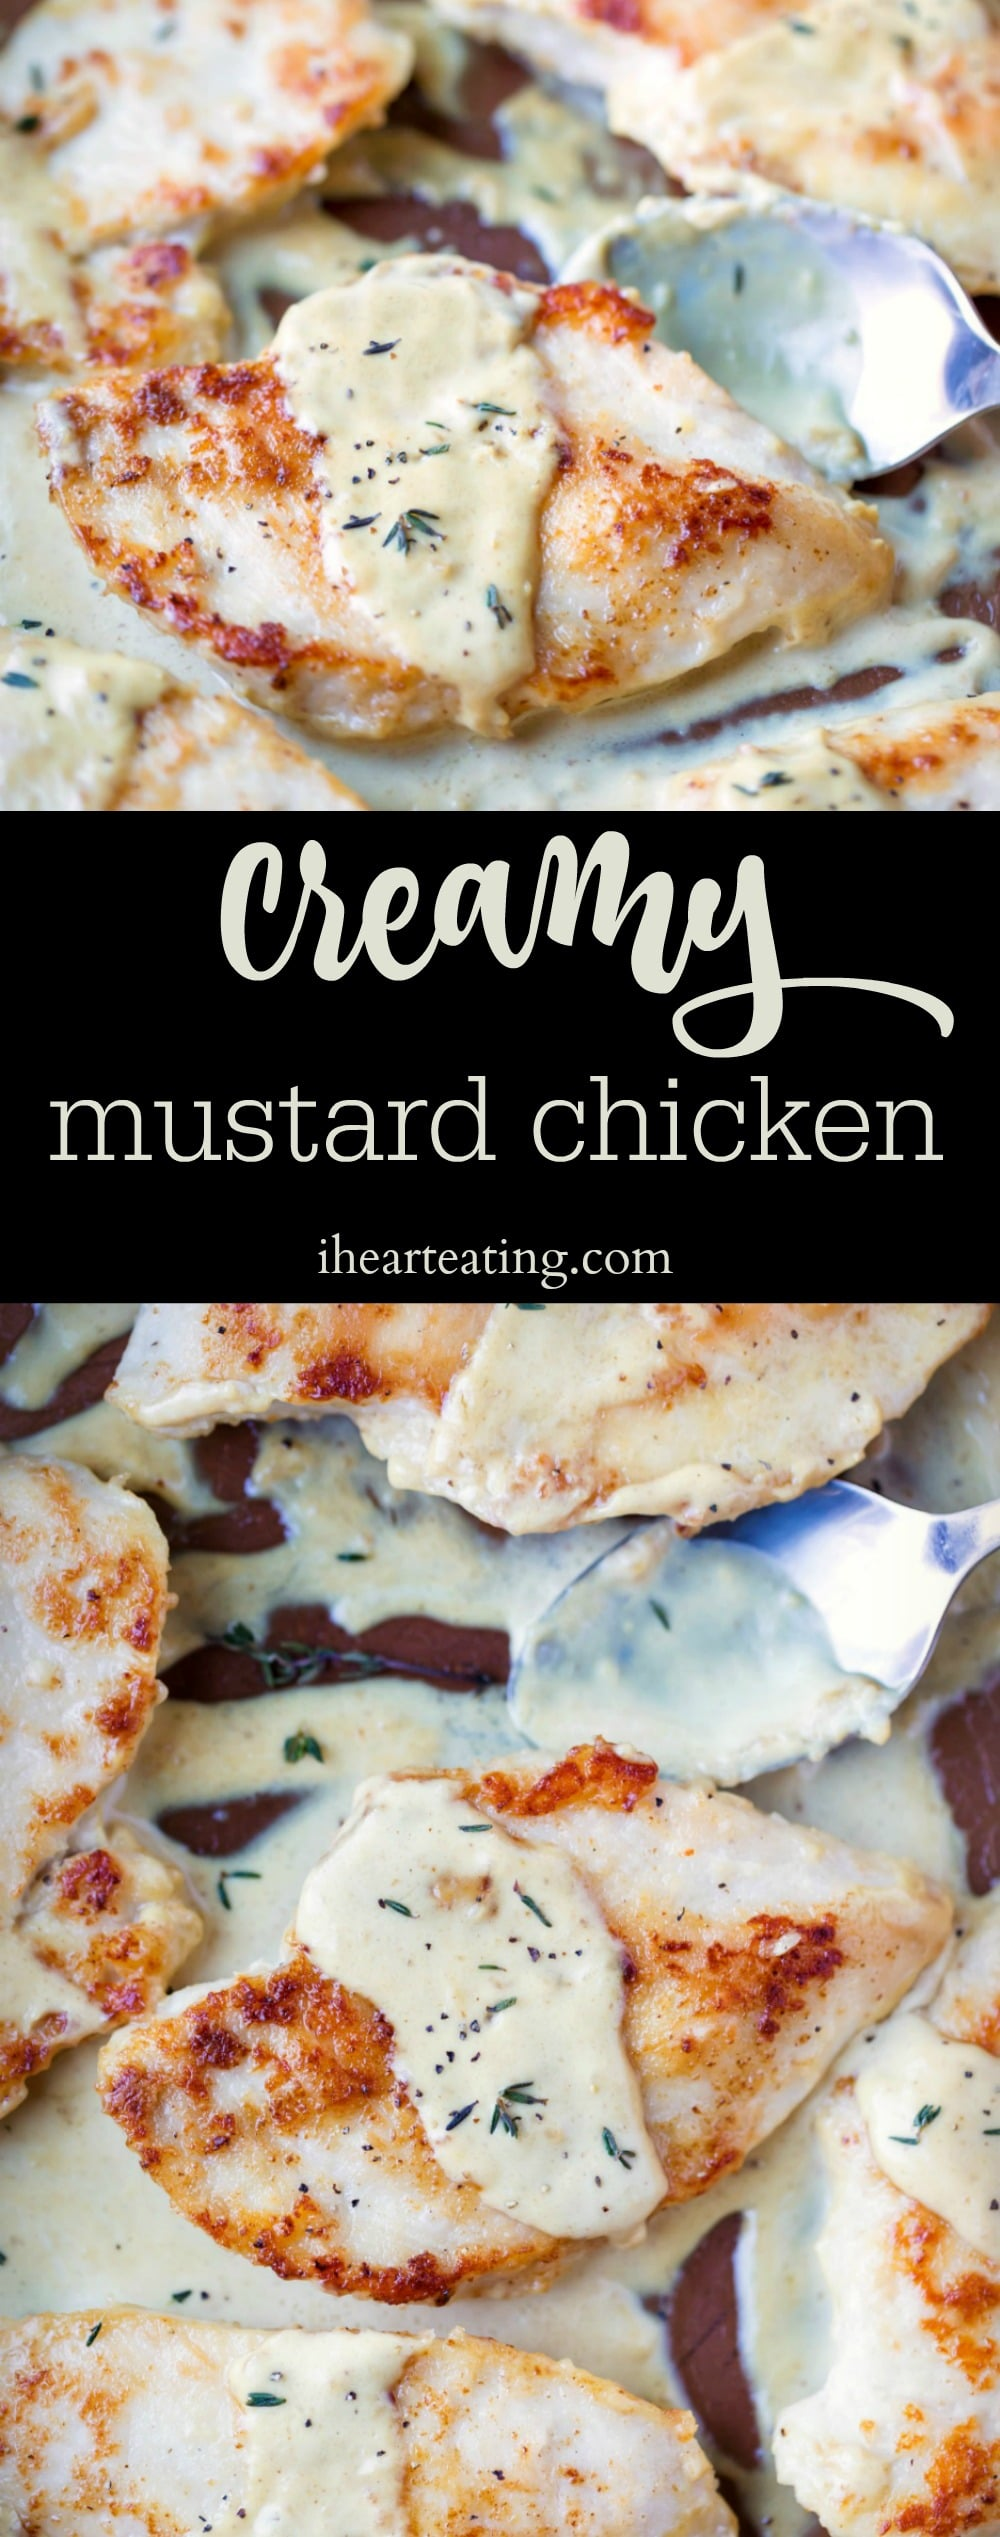 Creamy Mustard Chicken Recipe is a delicious skillet chicken dinner recipe that takes browned chicken and tops it with a creamy mustard sauce for an easy 30 minute meal! #chicken #dinner #skillet #recipes